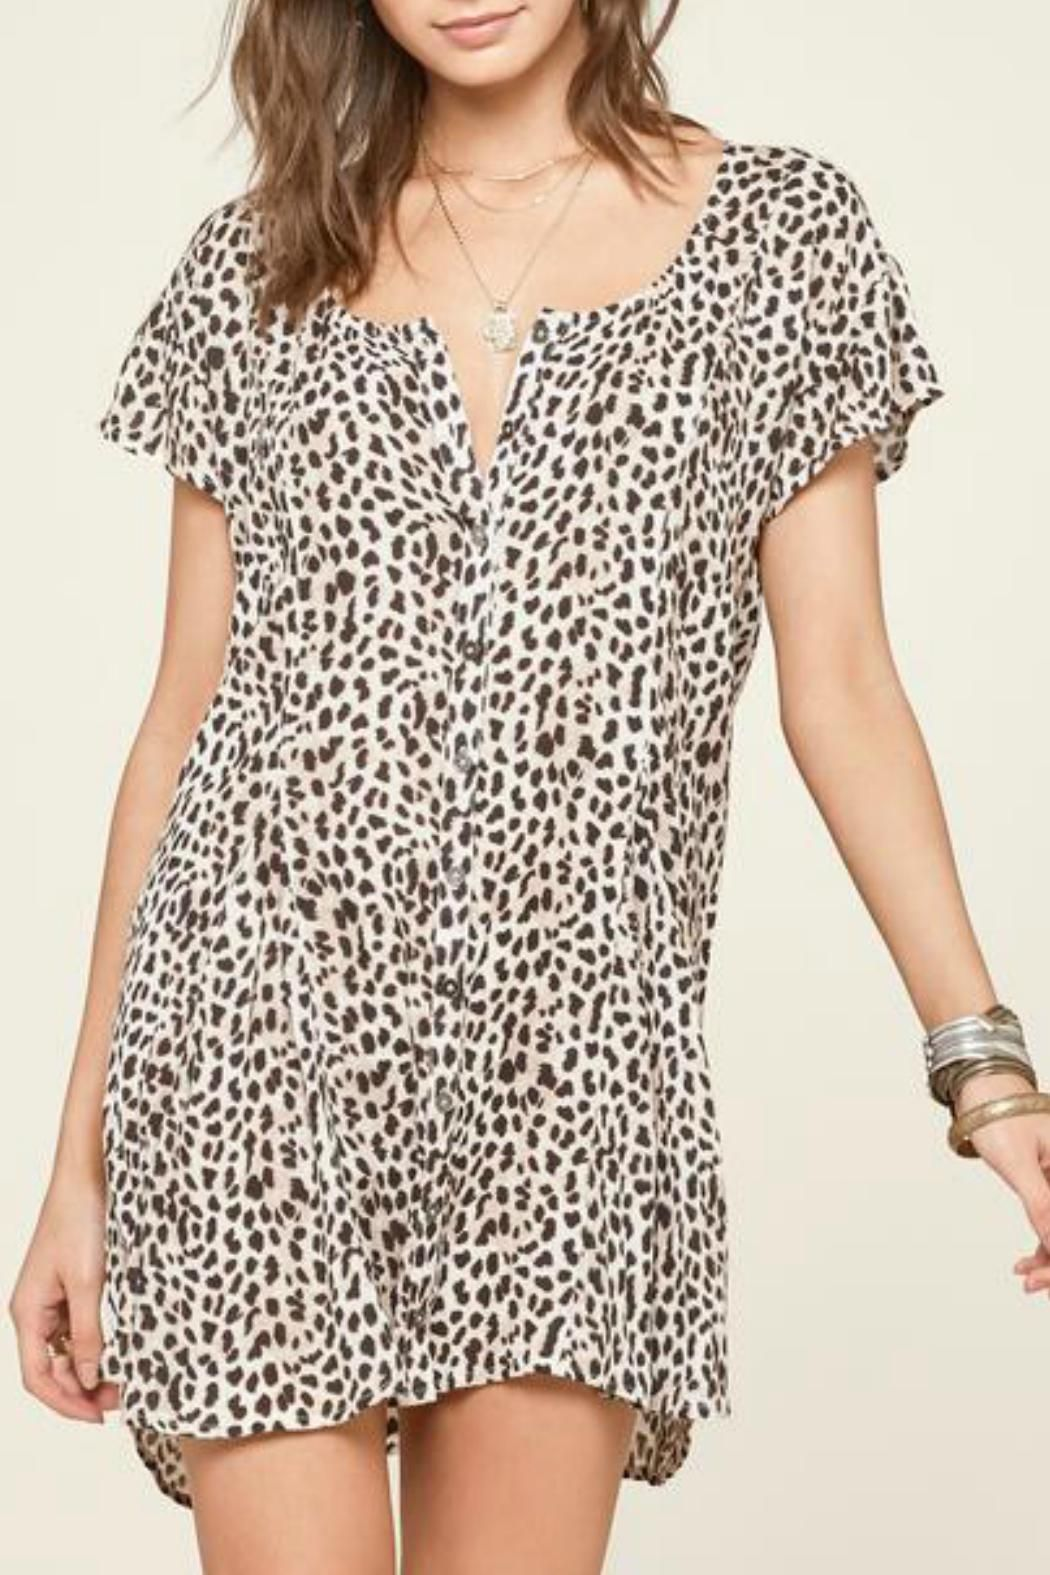 Amuse society leopard sun dress pinterest front button dress